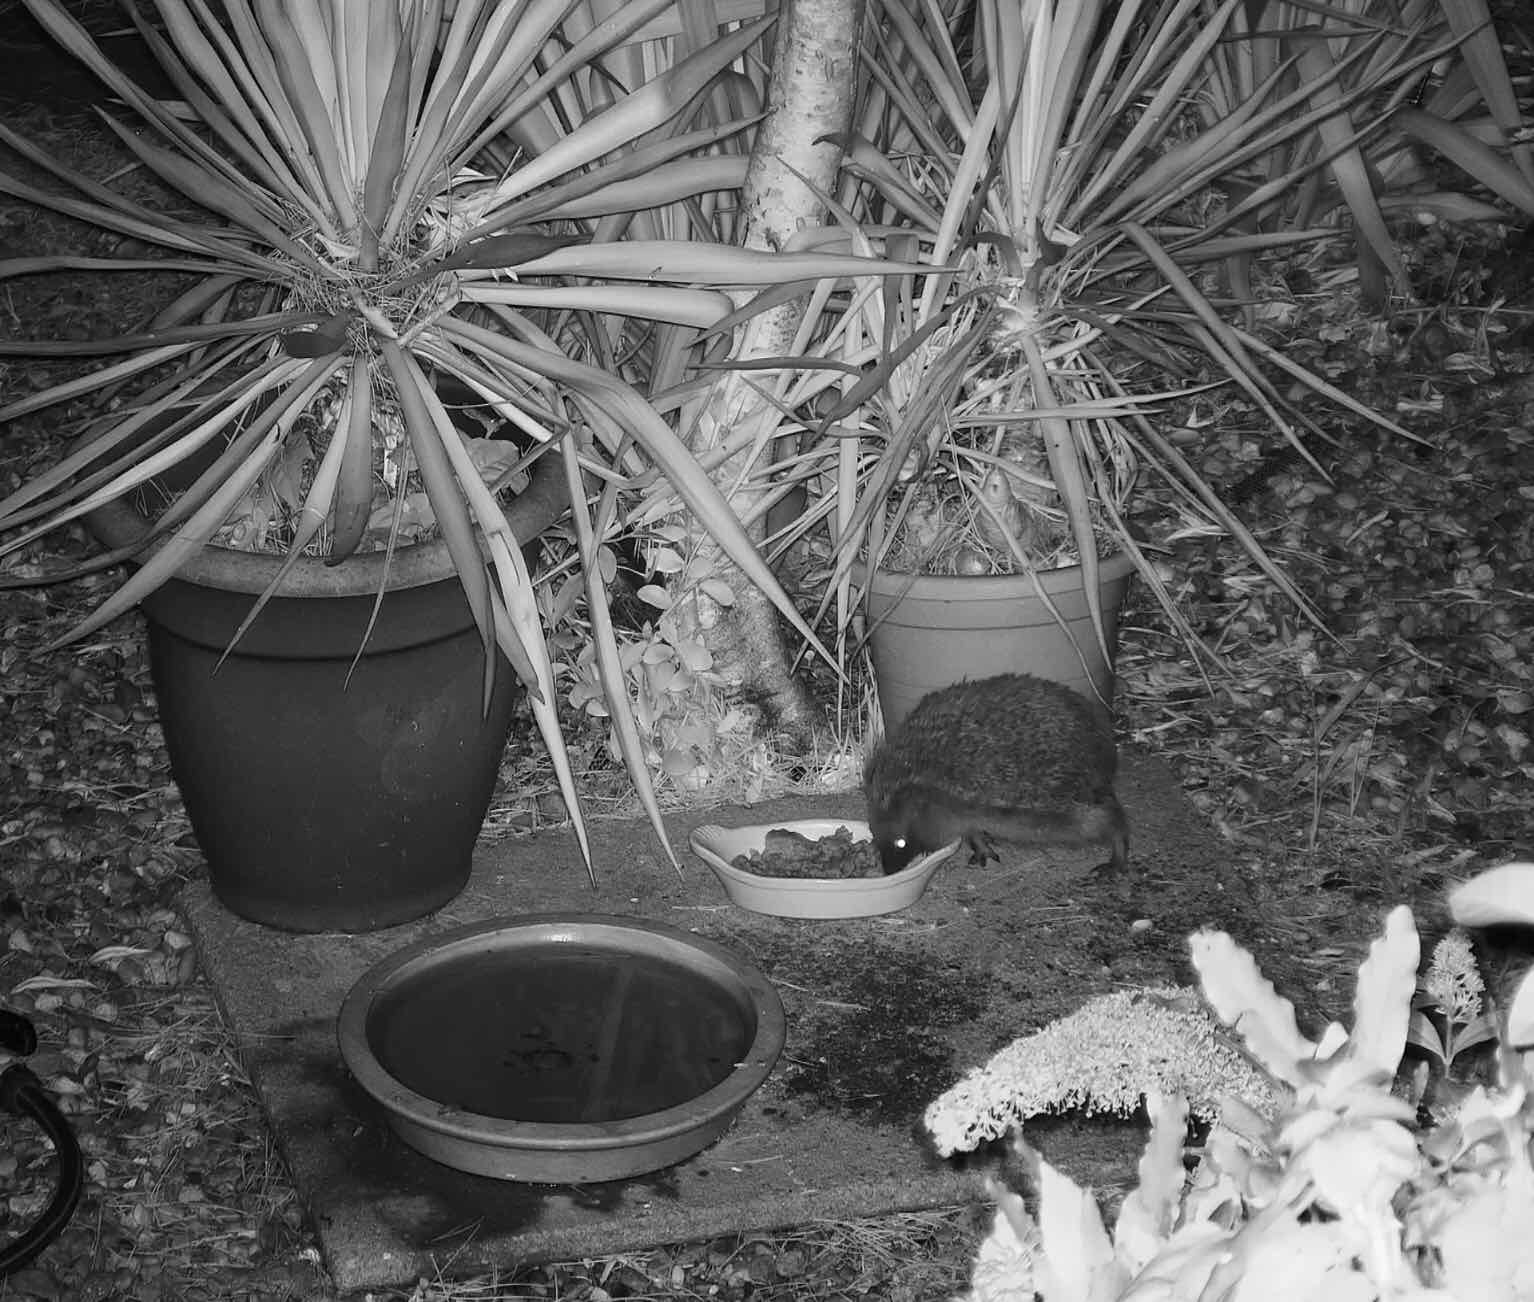 Hedgehog nighttime still